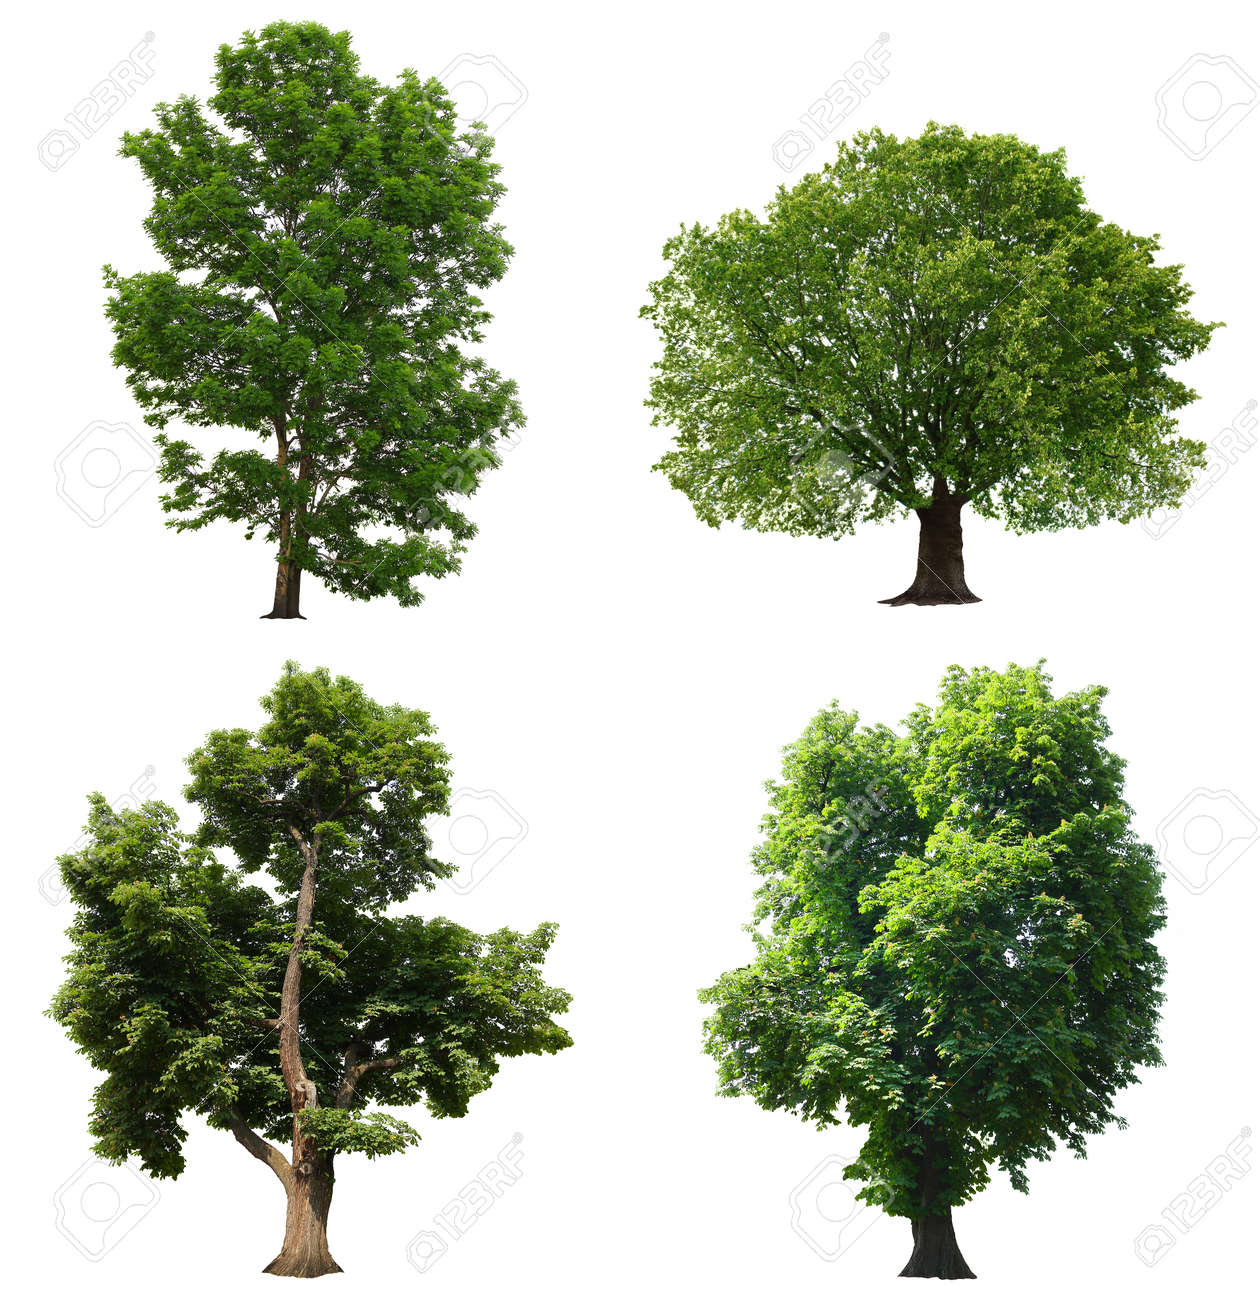 Trees with green leaves isolated on white background - 16210241